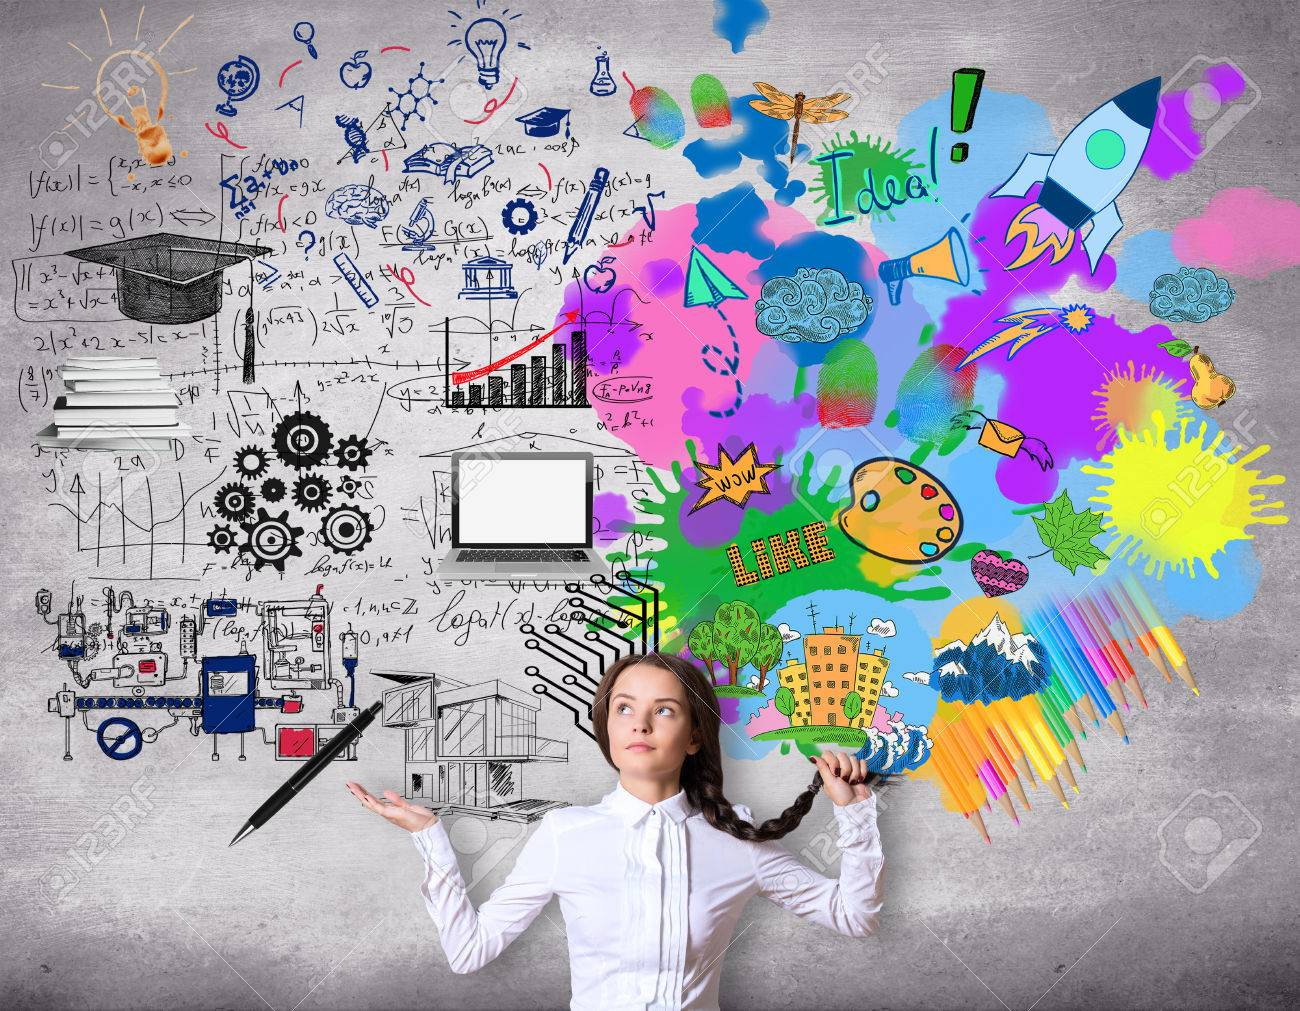 creative and analytical thinking concept confused girl creative and analytical thinking concept confused girl colorful sketch on concrete background stock photo